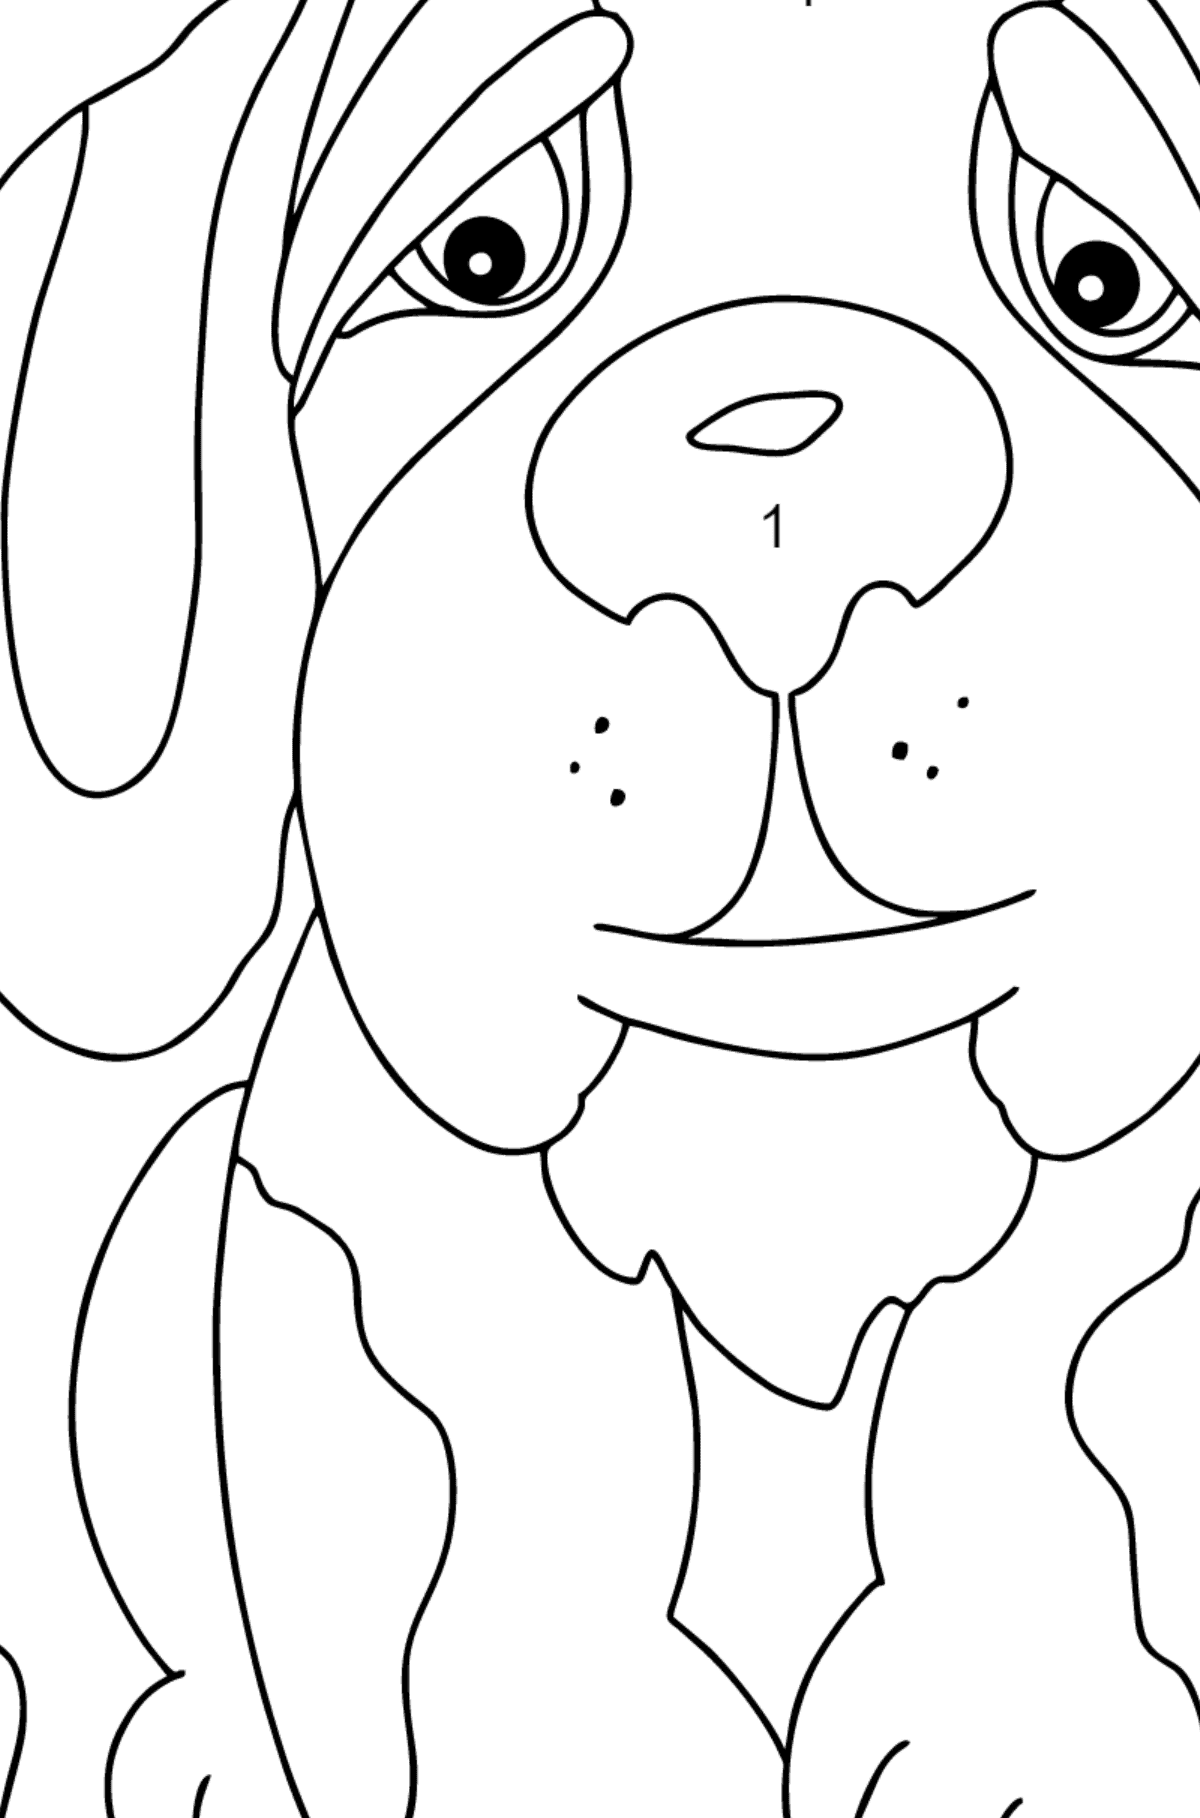 Coloring Page - A Dog is Looking Out a Butterfly for Children  - Color by Number